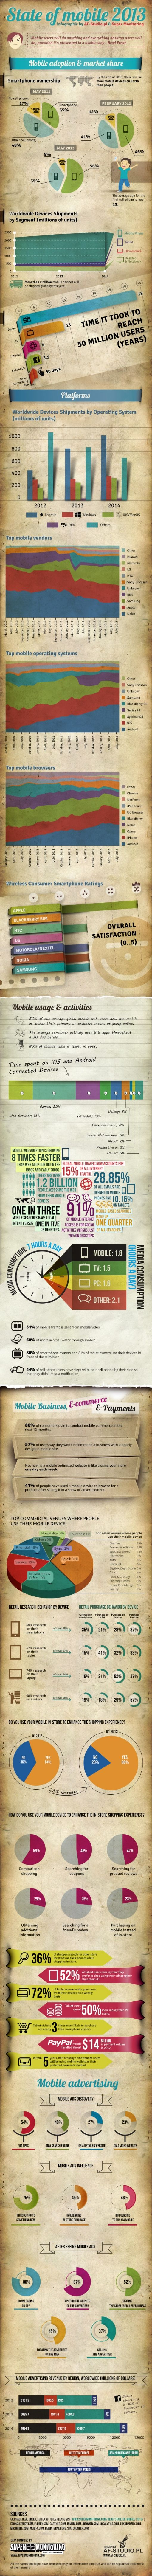 inforgraphic-mobile